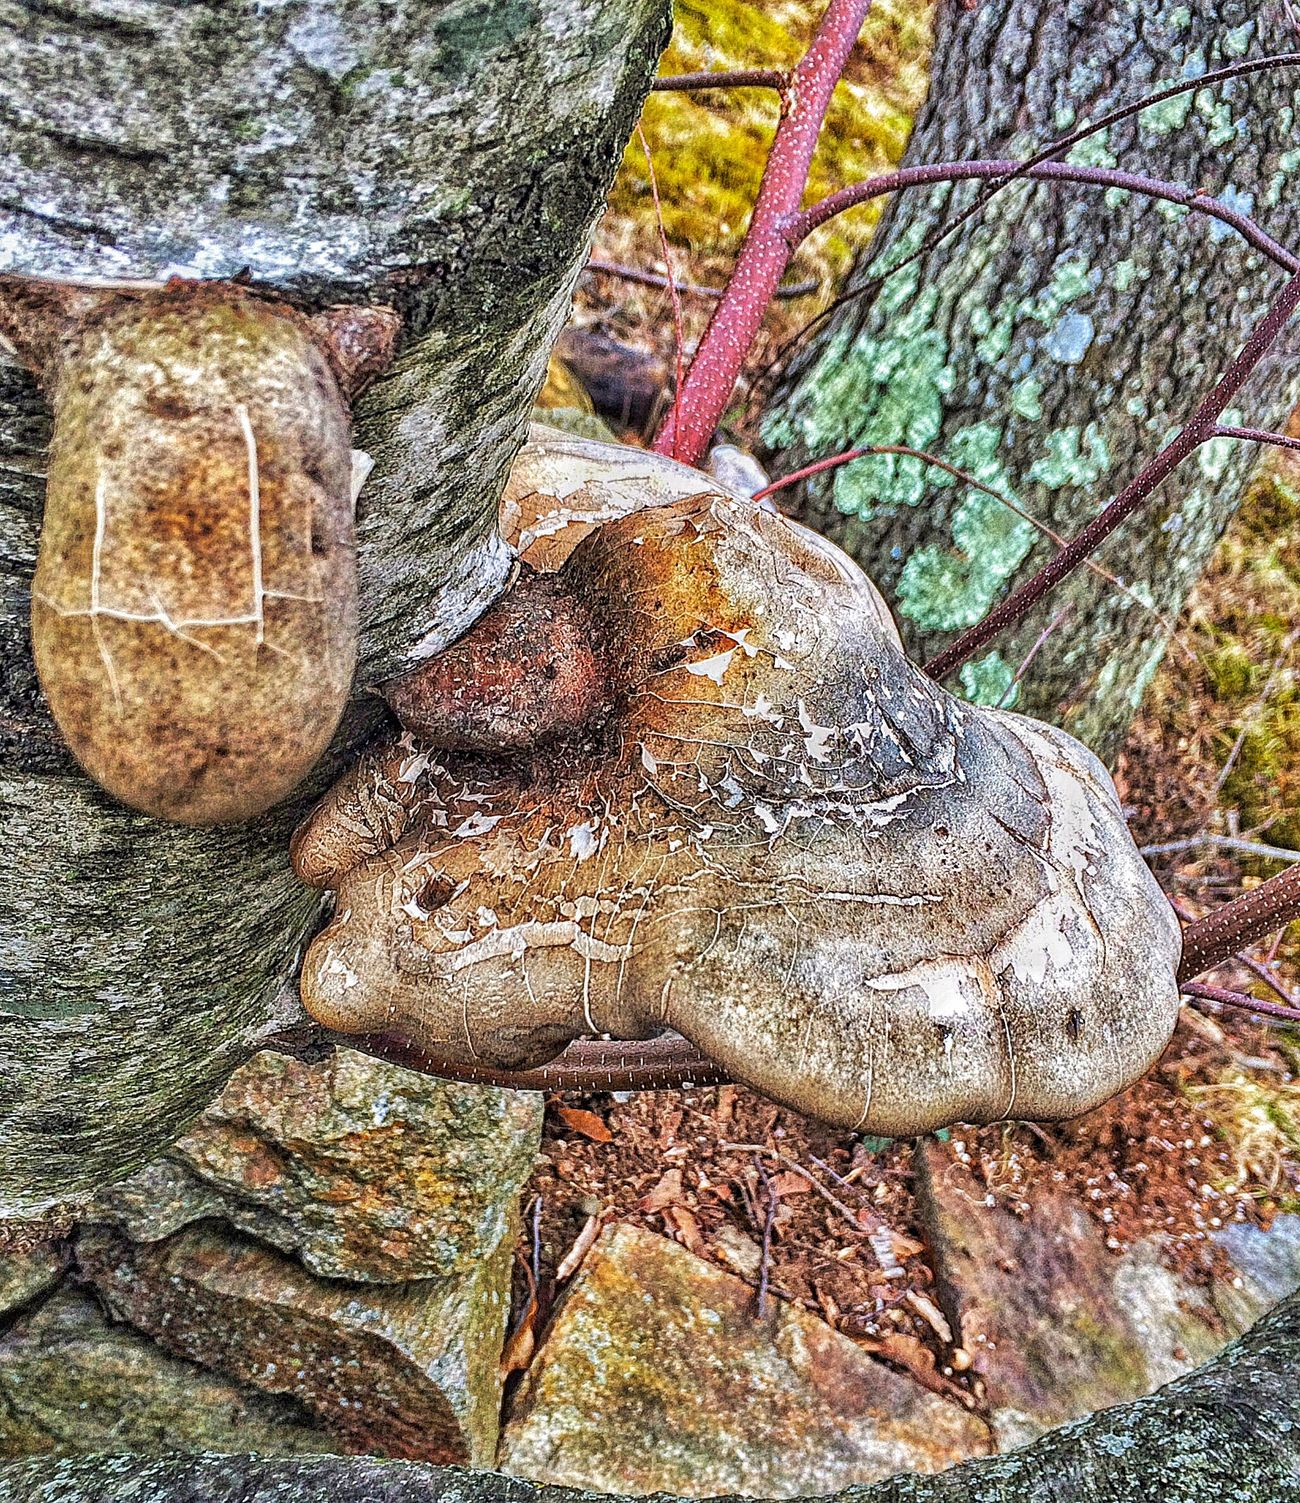 Out walking my dog again, birch polypore... Kanbatake Outdoor Photography Outdoors Outside Photography Outside Iphonephotography IPhoneography USA New England  Connecticut Stratford Nature_collection Nature Walking Walking Around Walk Walkabout Polypore Birch Tree Birch Fungi Fungus 🍄 Fungus